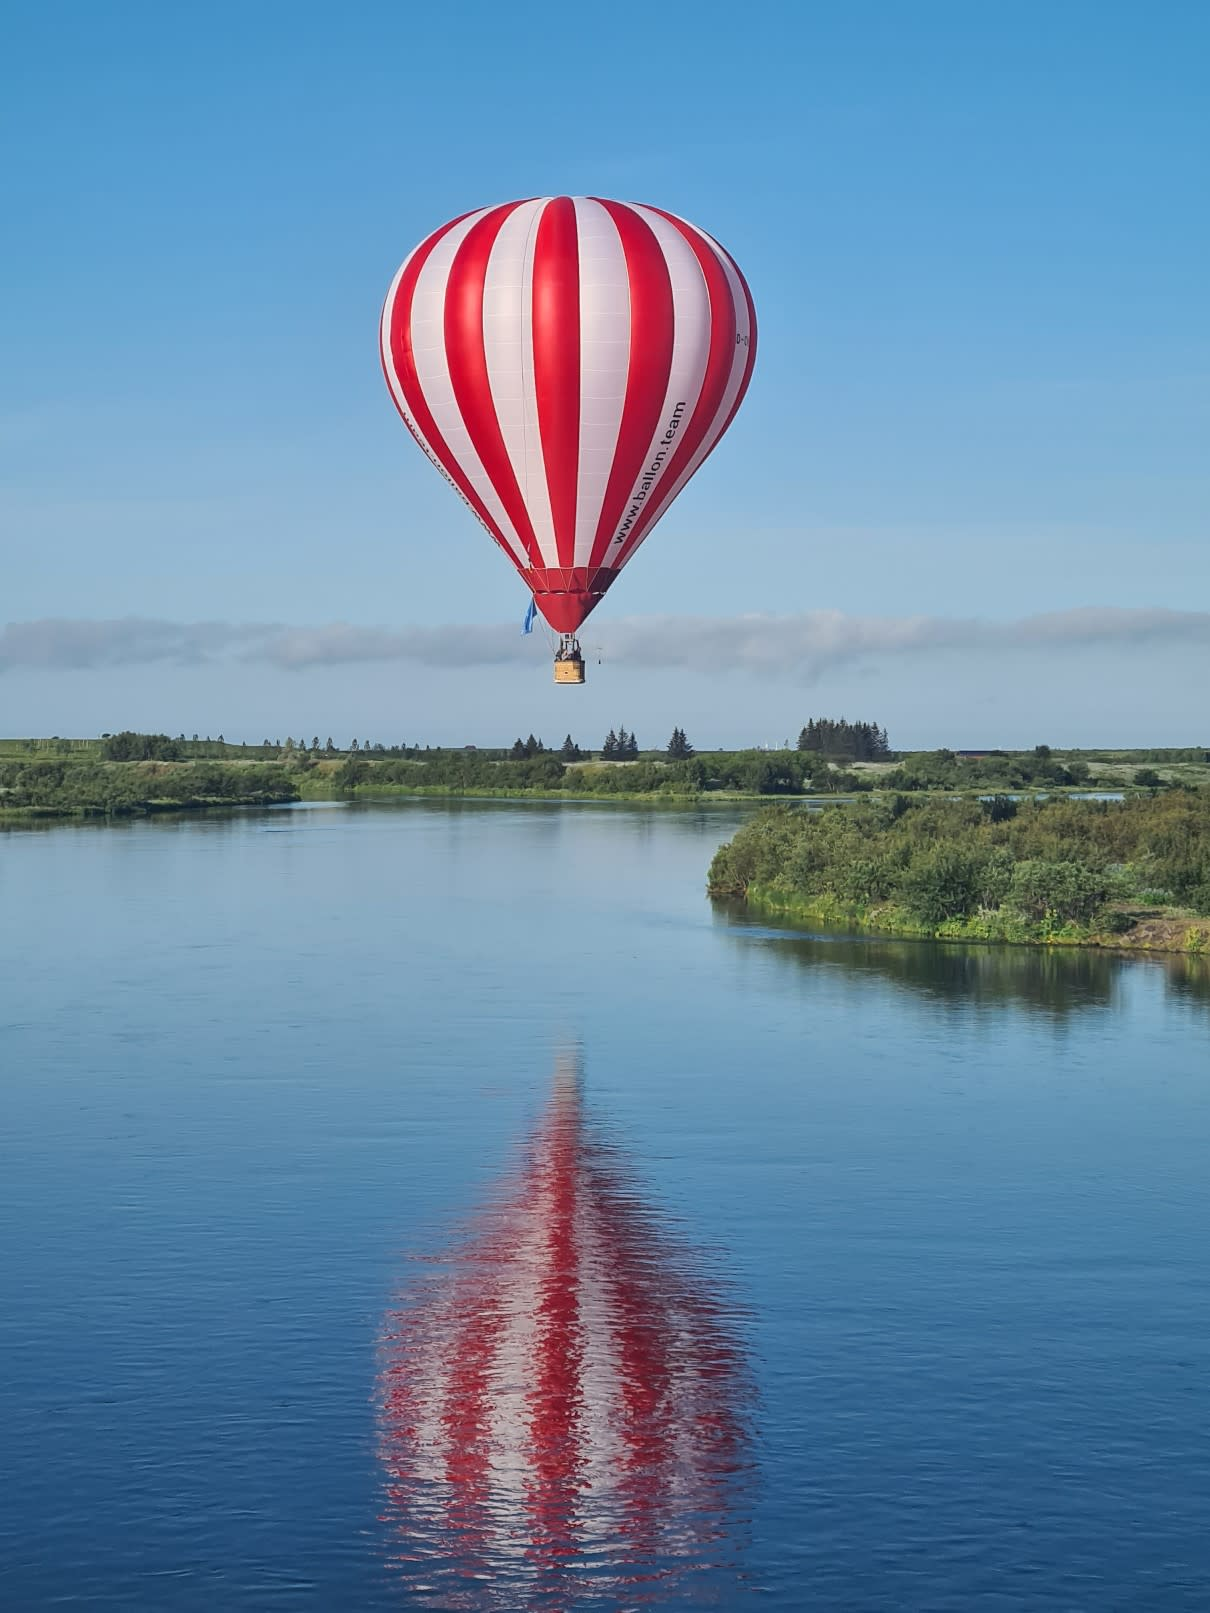 a red and white striped hot air balloon flying over a body of water in South Iceland